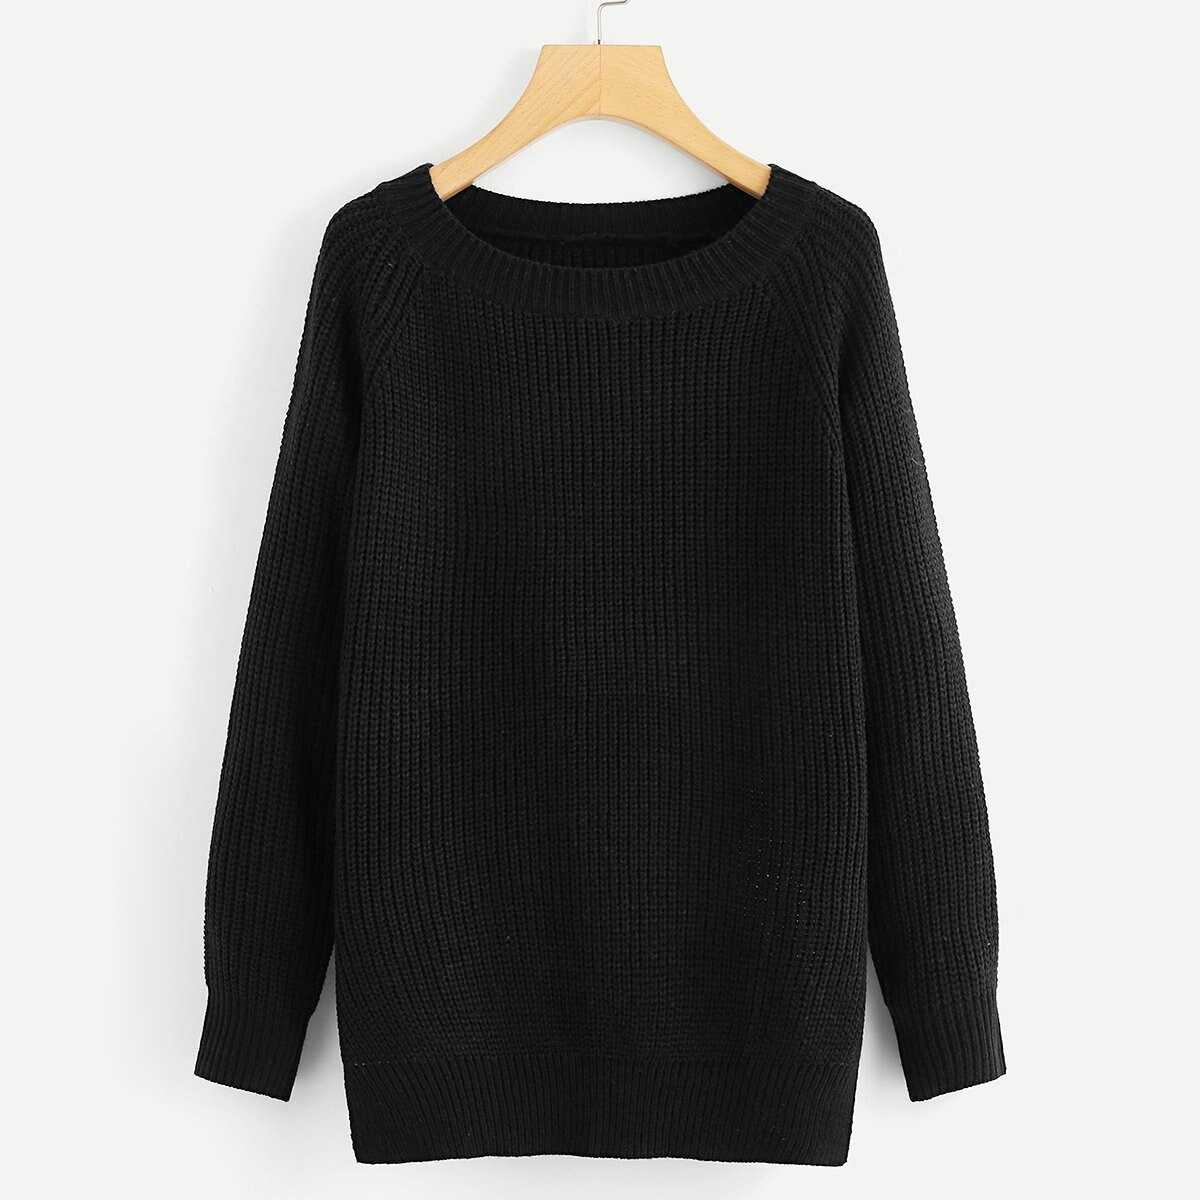 Knot Open Back Solid Sweater - Shein - GOOFASH